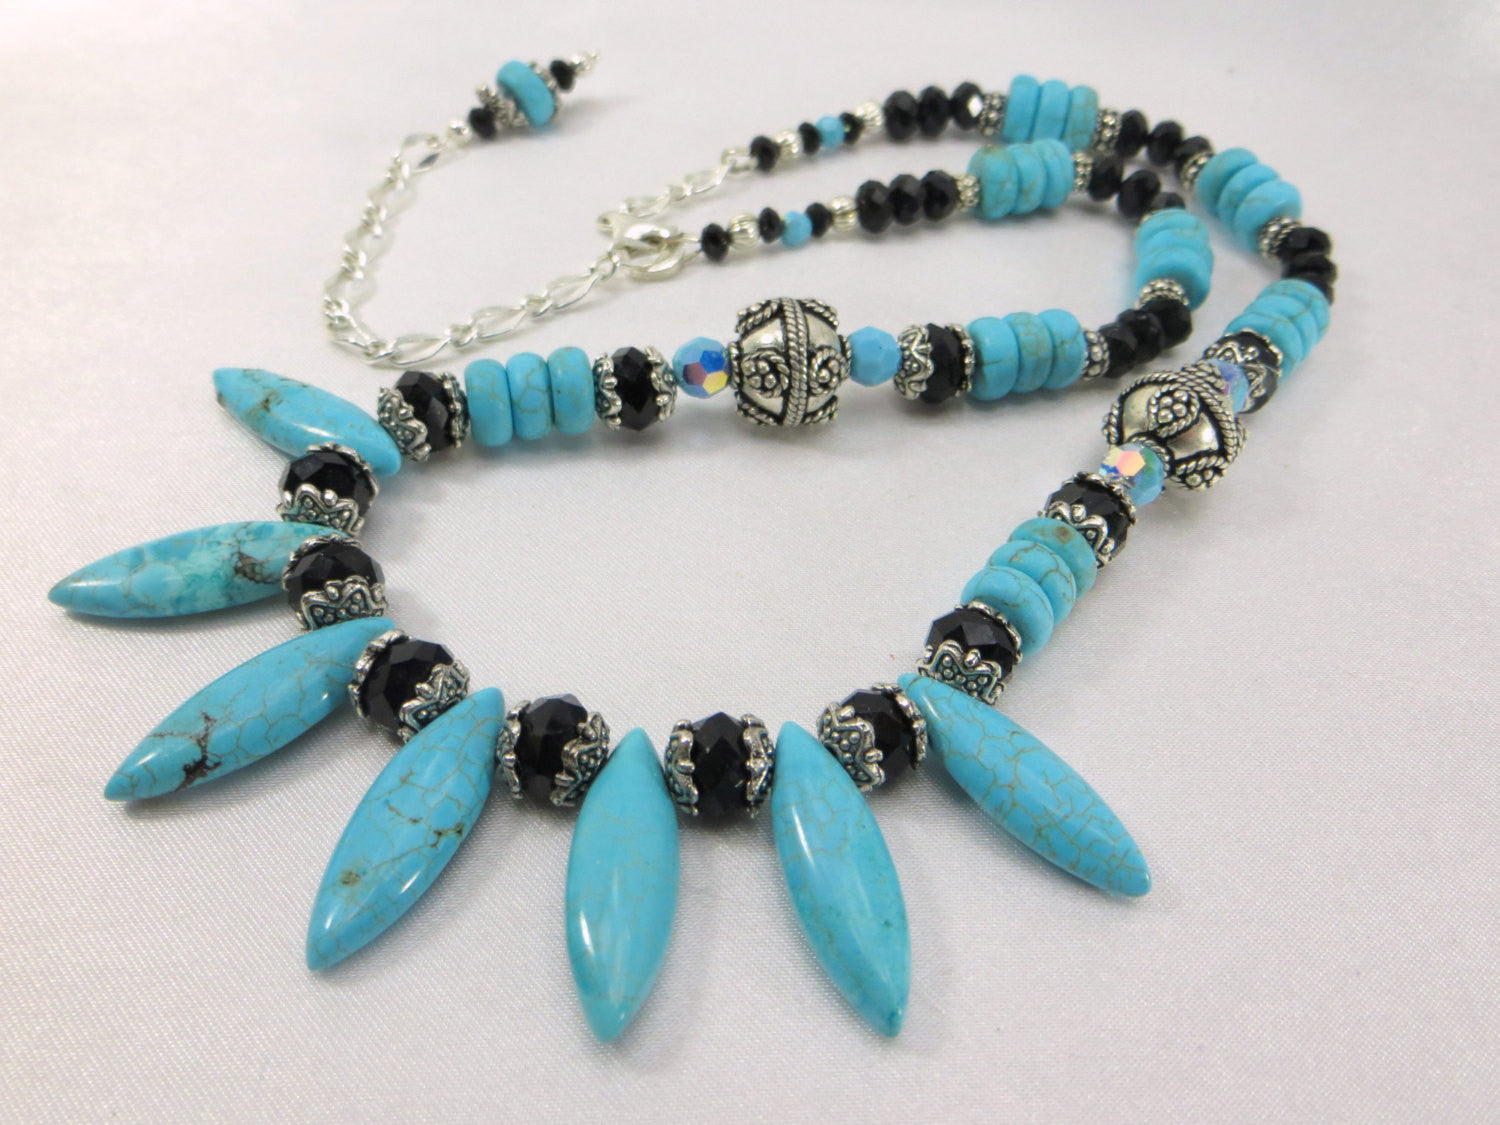 Chunky Adjustable Statement Dagger Spike Necklace in Blue Turquoise, Black Crystals and Silver - Odyssey Creations